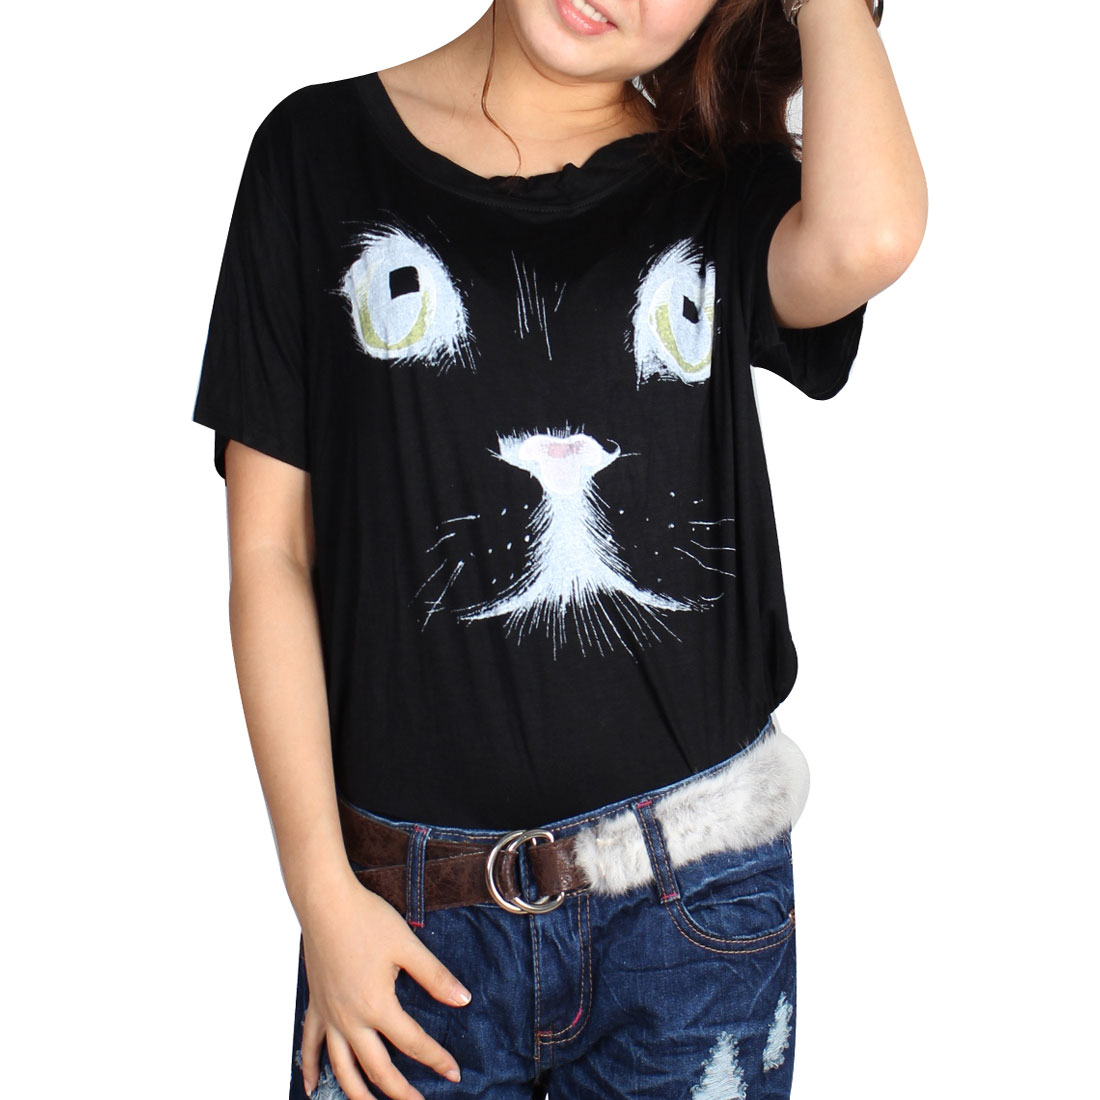 Short Sleeves Round Neck Cat Pattern Loose T-Shirt Black M for Lady